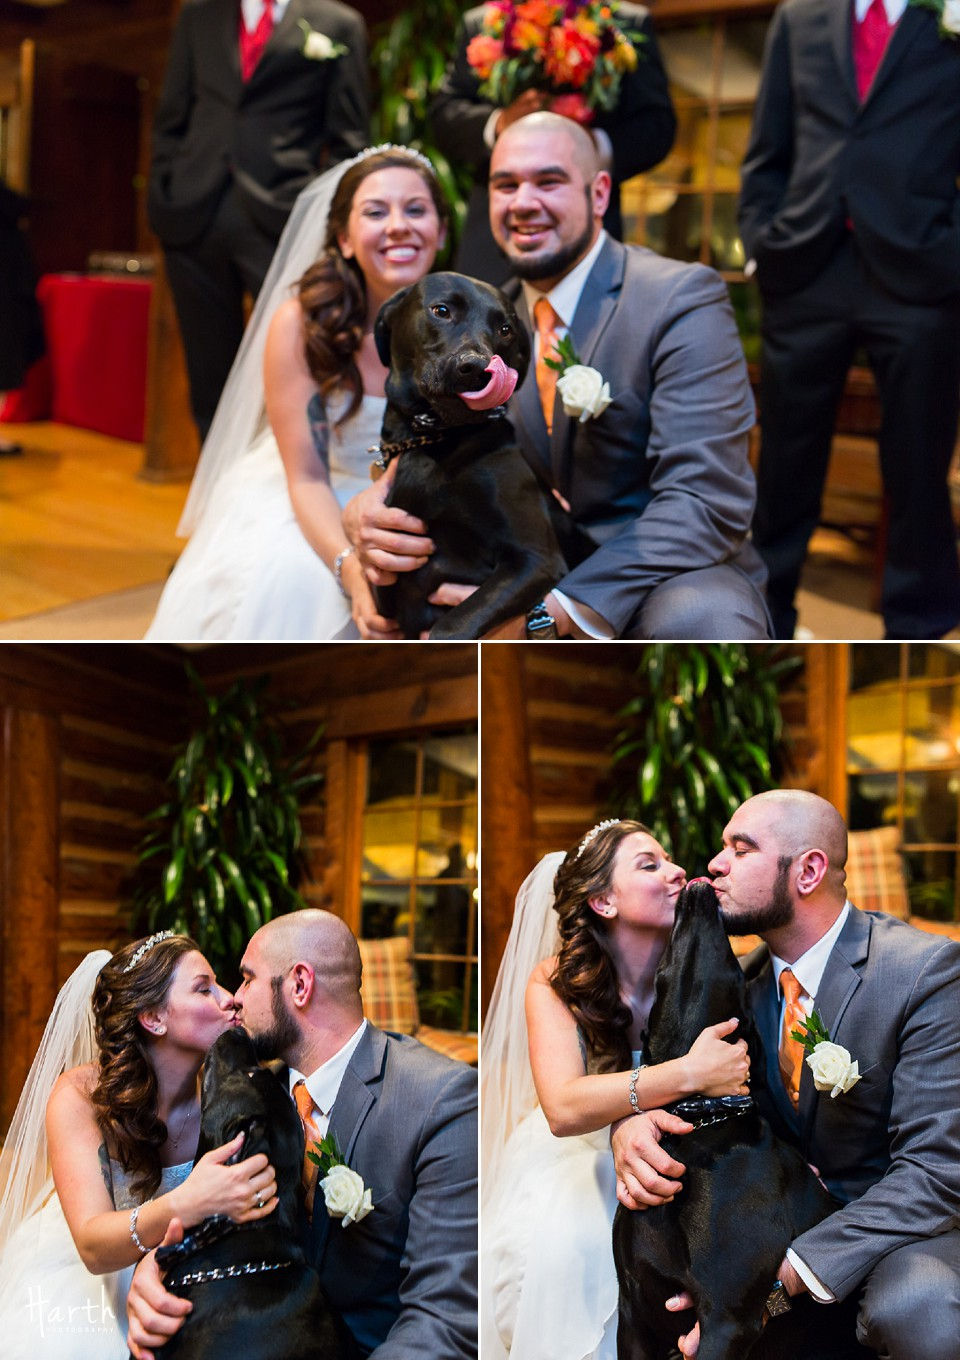 liz-christopher-bellevue-wa-wedding-356